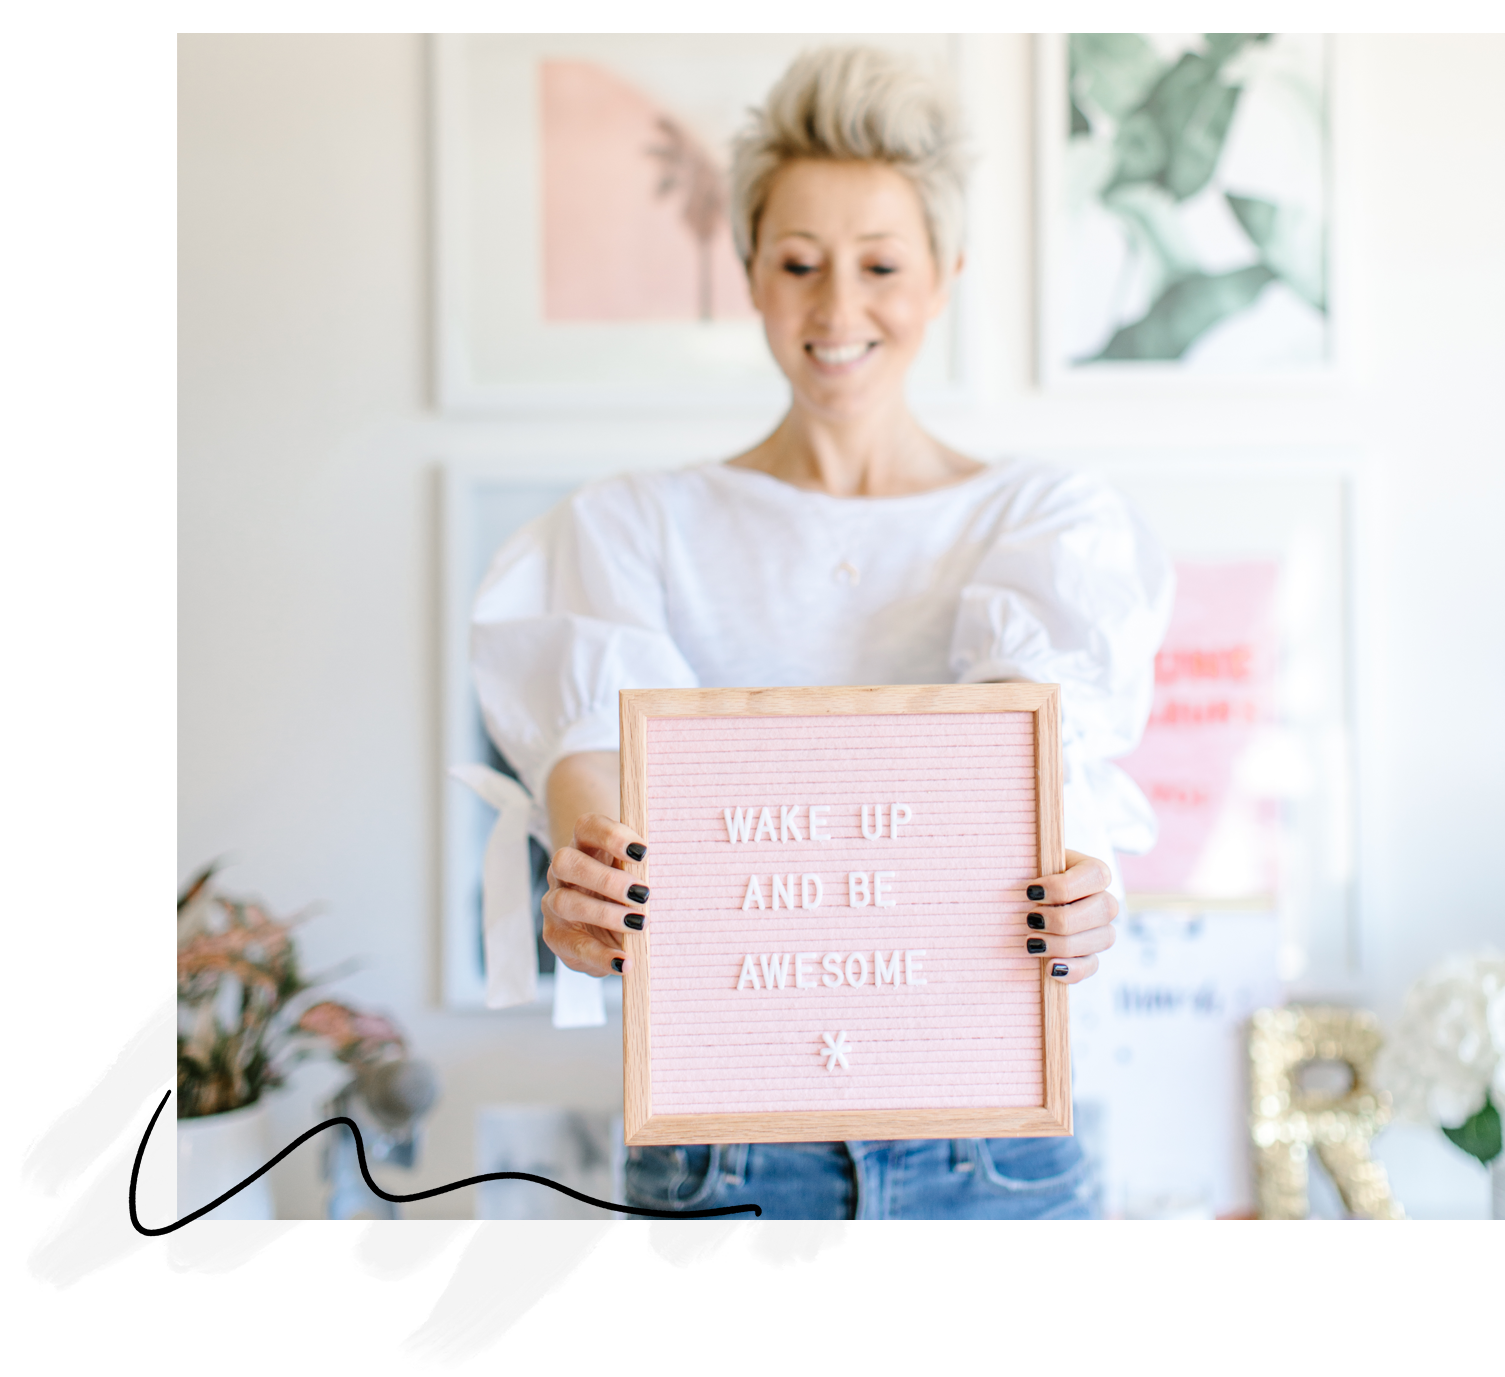 Wake up and be awesome - Dreams for Breakfast is an online platform and weekly podcast for modern, creative women. Be inspired to pursue your purpose, invest in your well-being and create a joy-fueled life from the inside, out.